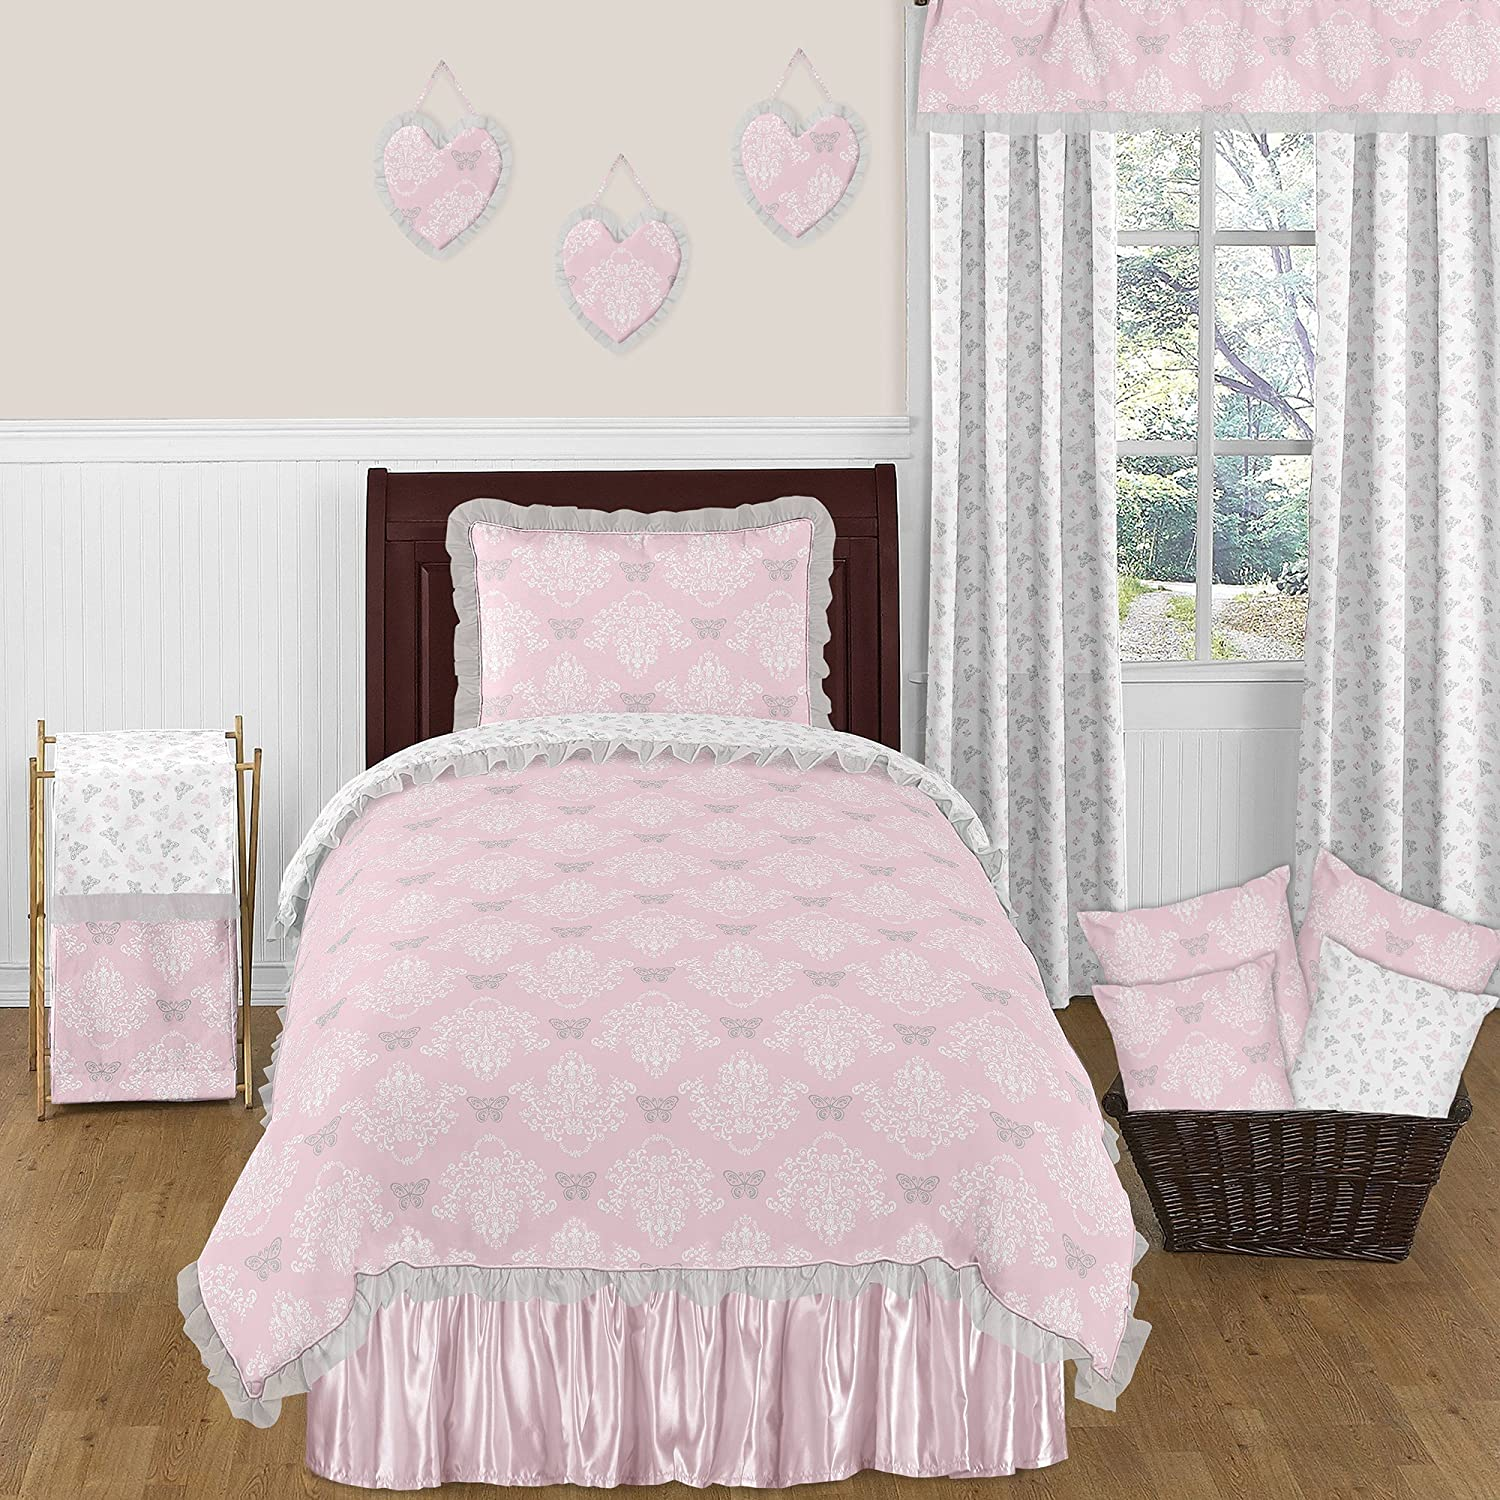 Sweet Jojo Designs 4-Piece Pink, Gray and White Shabby Chic Alexa Damask Butterfly Girls Twin Bedding Set Collection